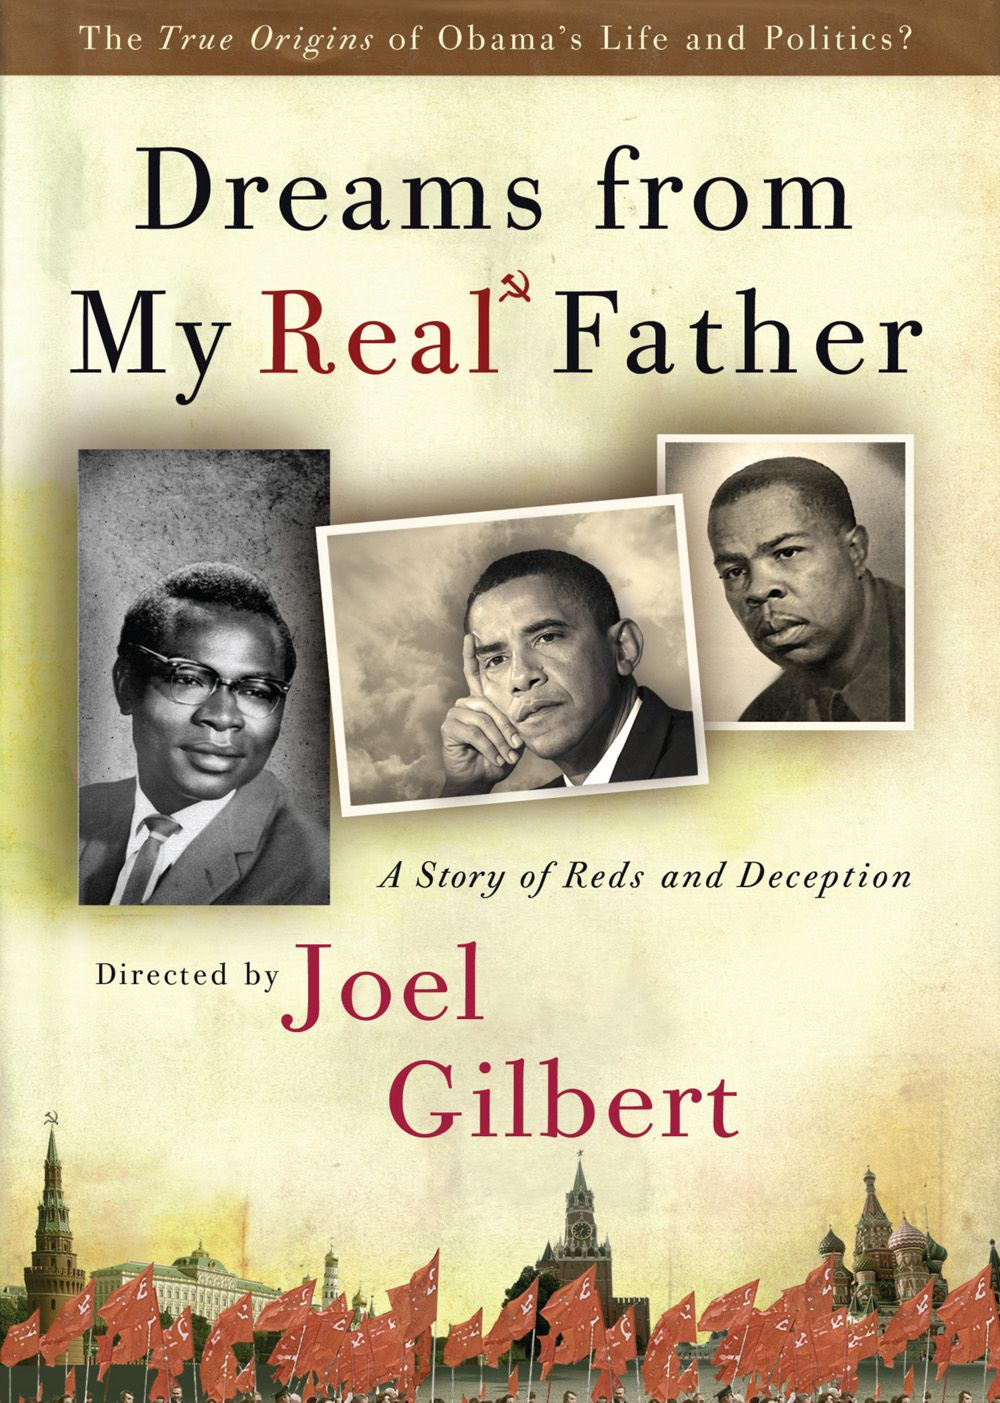 dreams of my father by barack obama essay You will have to read and draft a 1,000-word analytical essay on barack obama's dreams from my father (isbn-13: 978-1400082773) this essay will require you to.